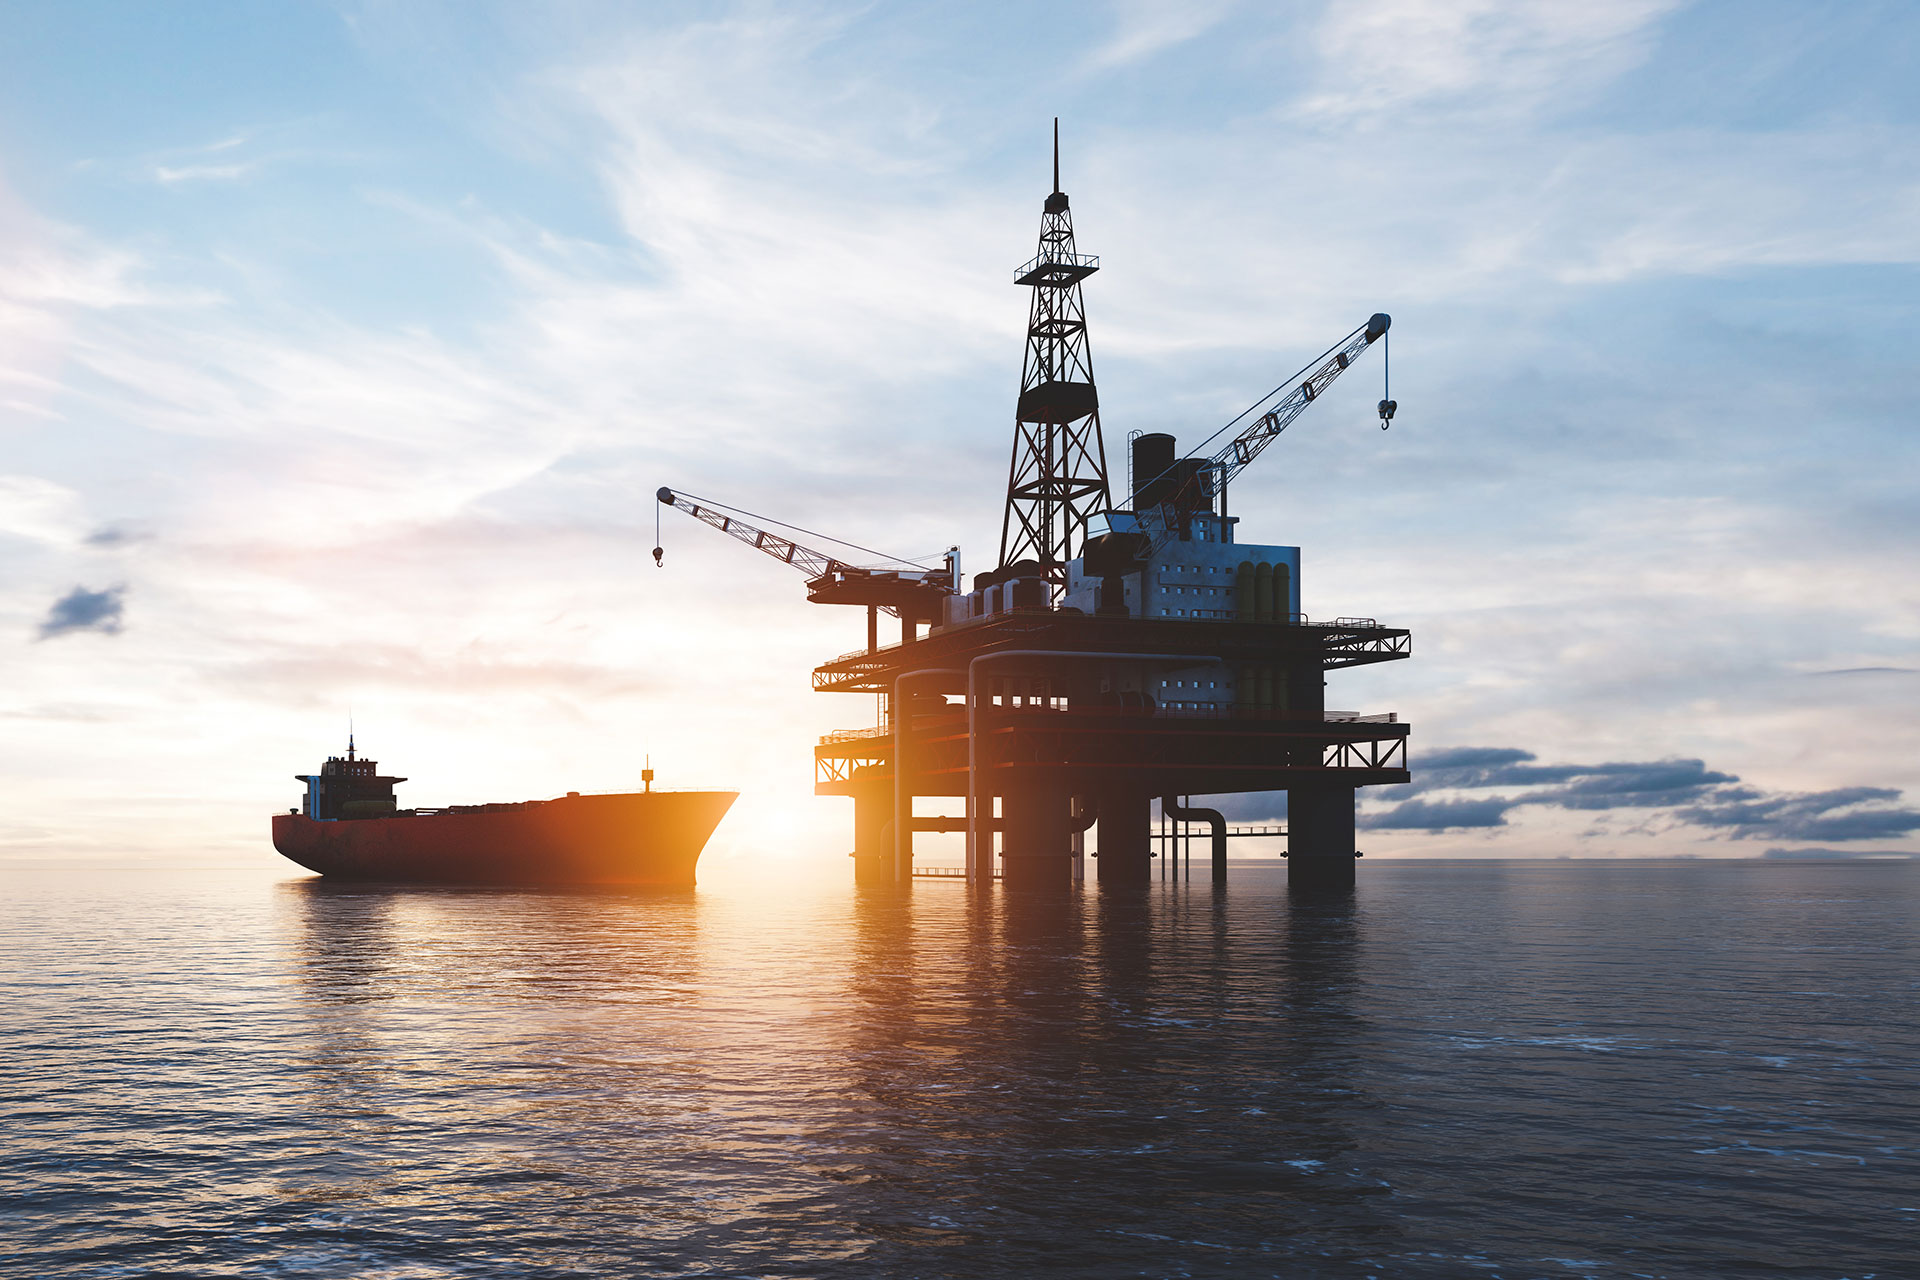 Oil platform on the ocean. Offshore drilling for gas and petroleum or crude oil.